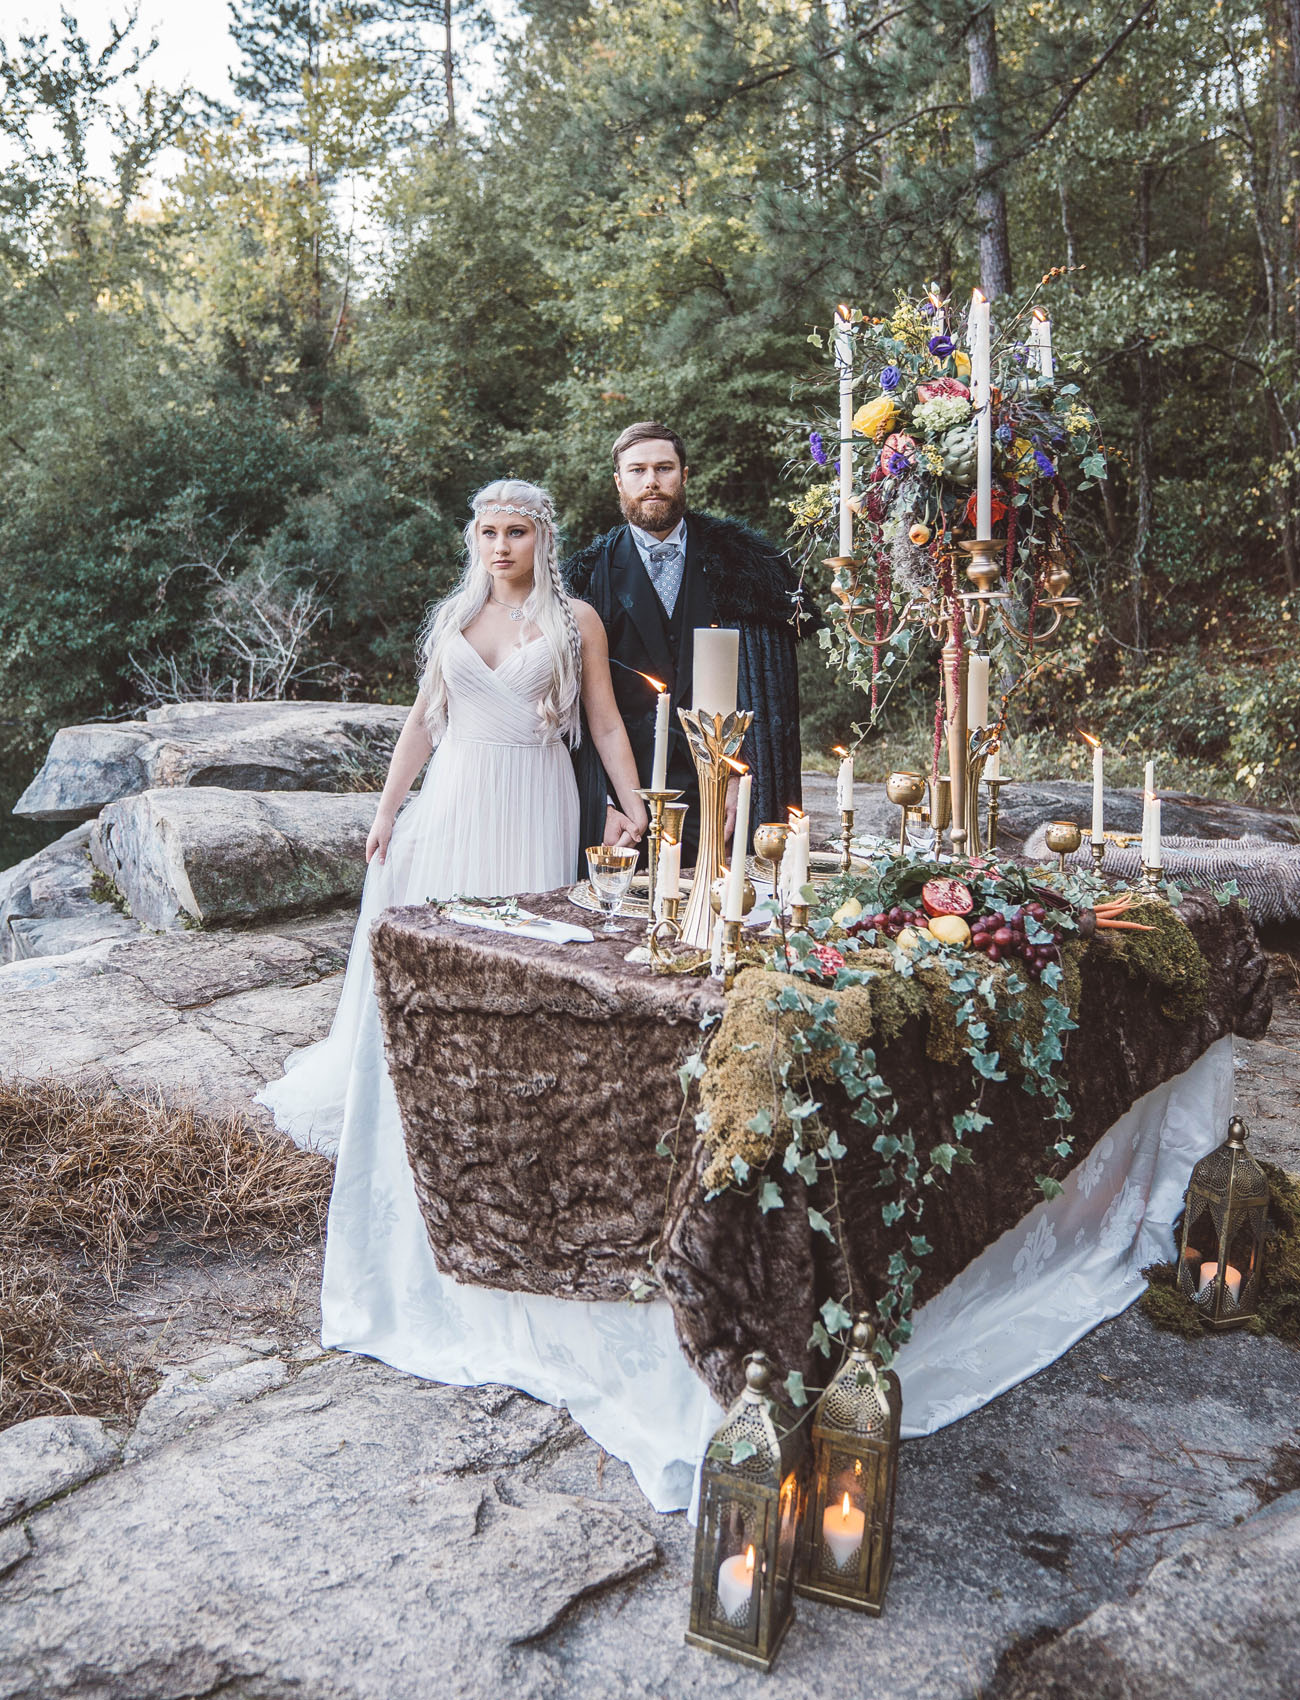 moss used to decorate a wedding table